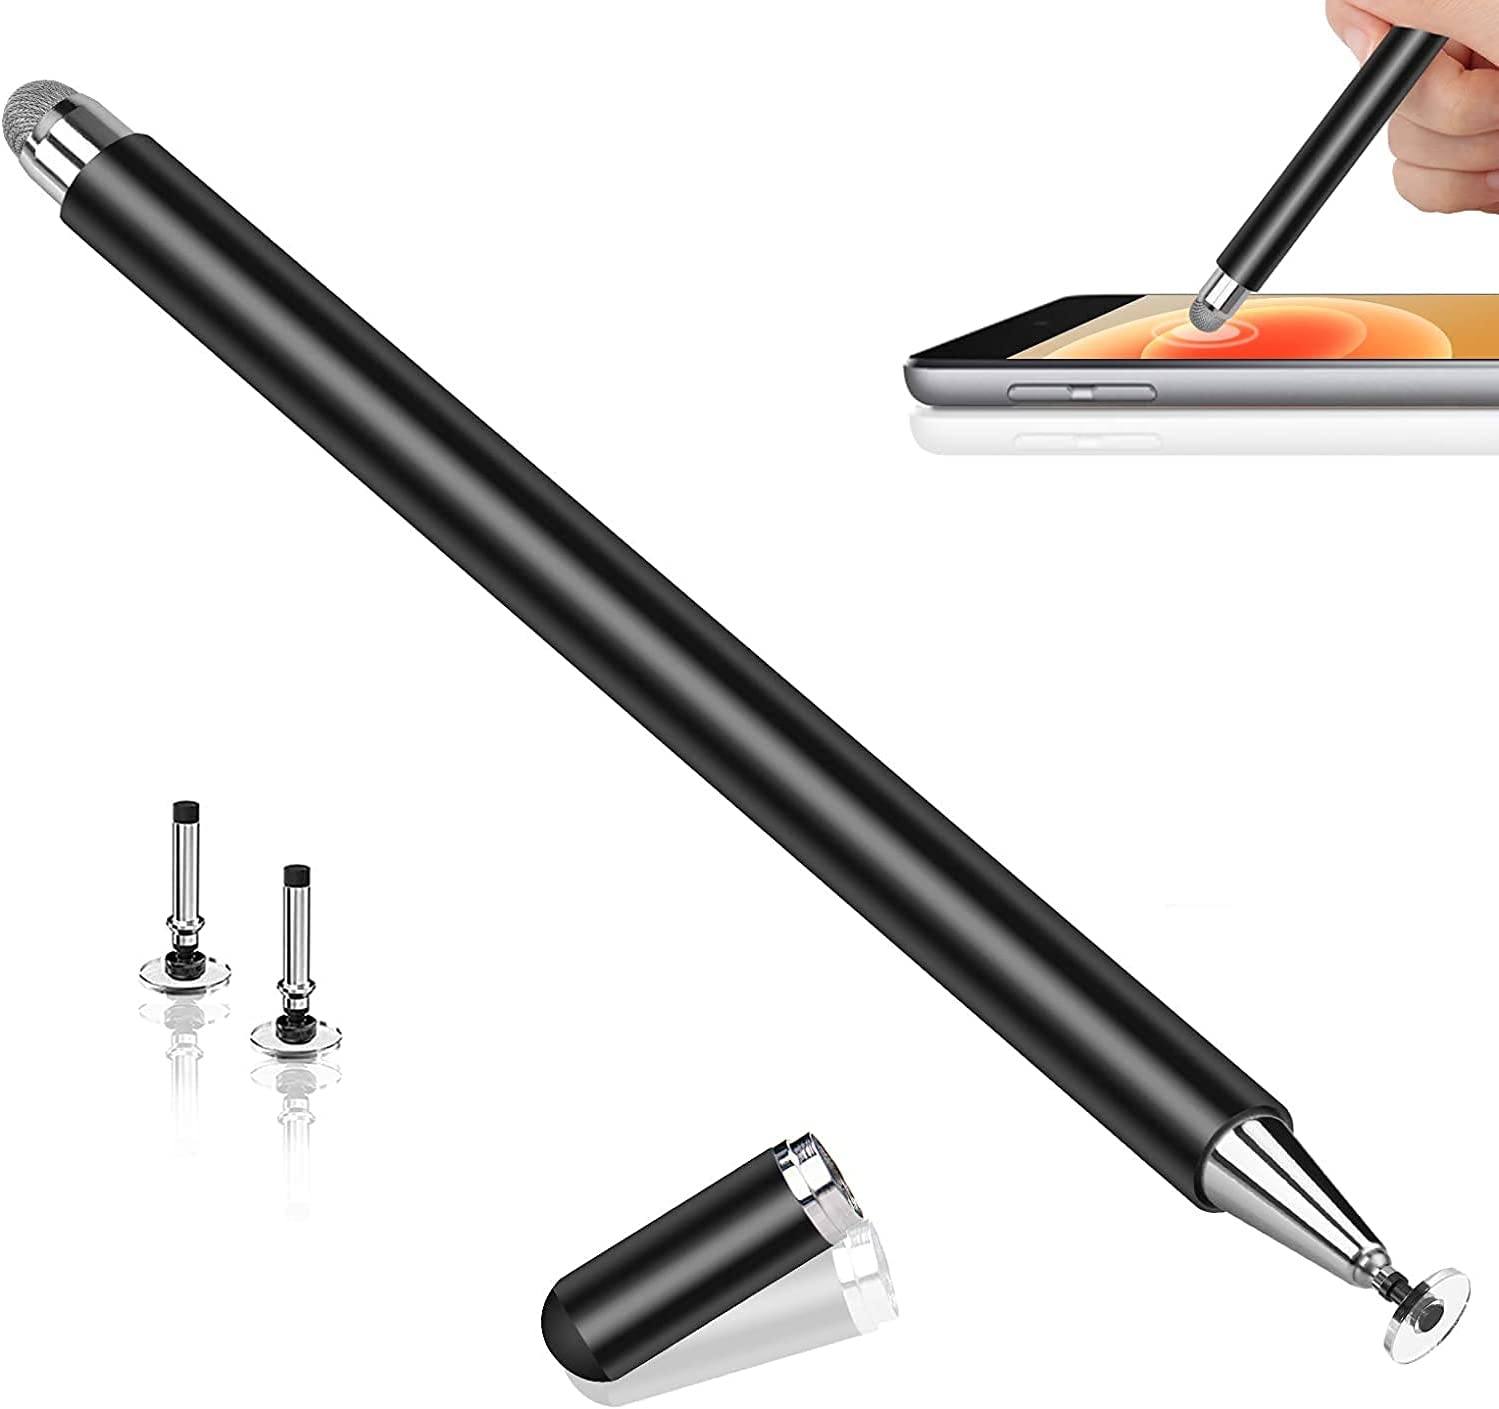 Stylus Pens for Touch Screens, Stylus Pen for iPad, Universal Touch Tablet Pencil with Magnetic Cap 3 Spare Tips for iPhone/iPad Pro/Mini/Air/Android/Microsoft Surface and Tablet Devices,